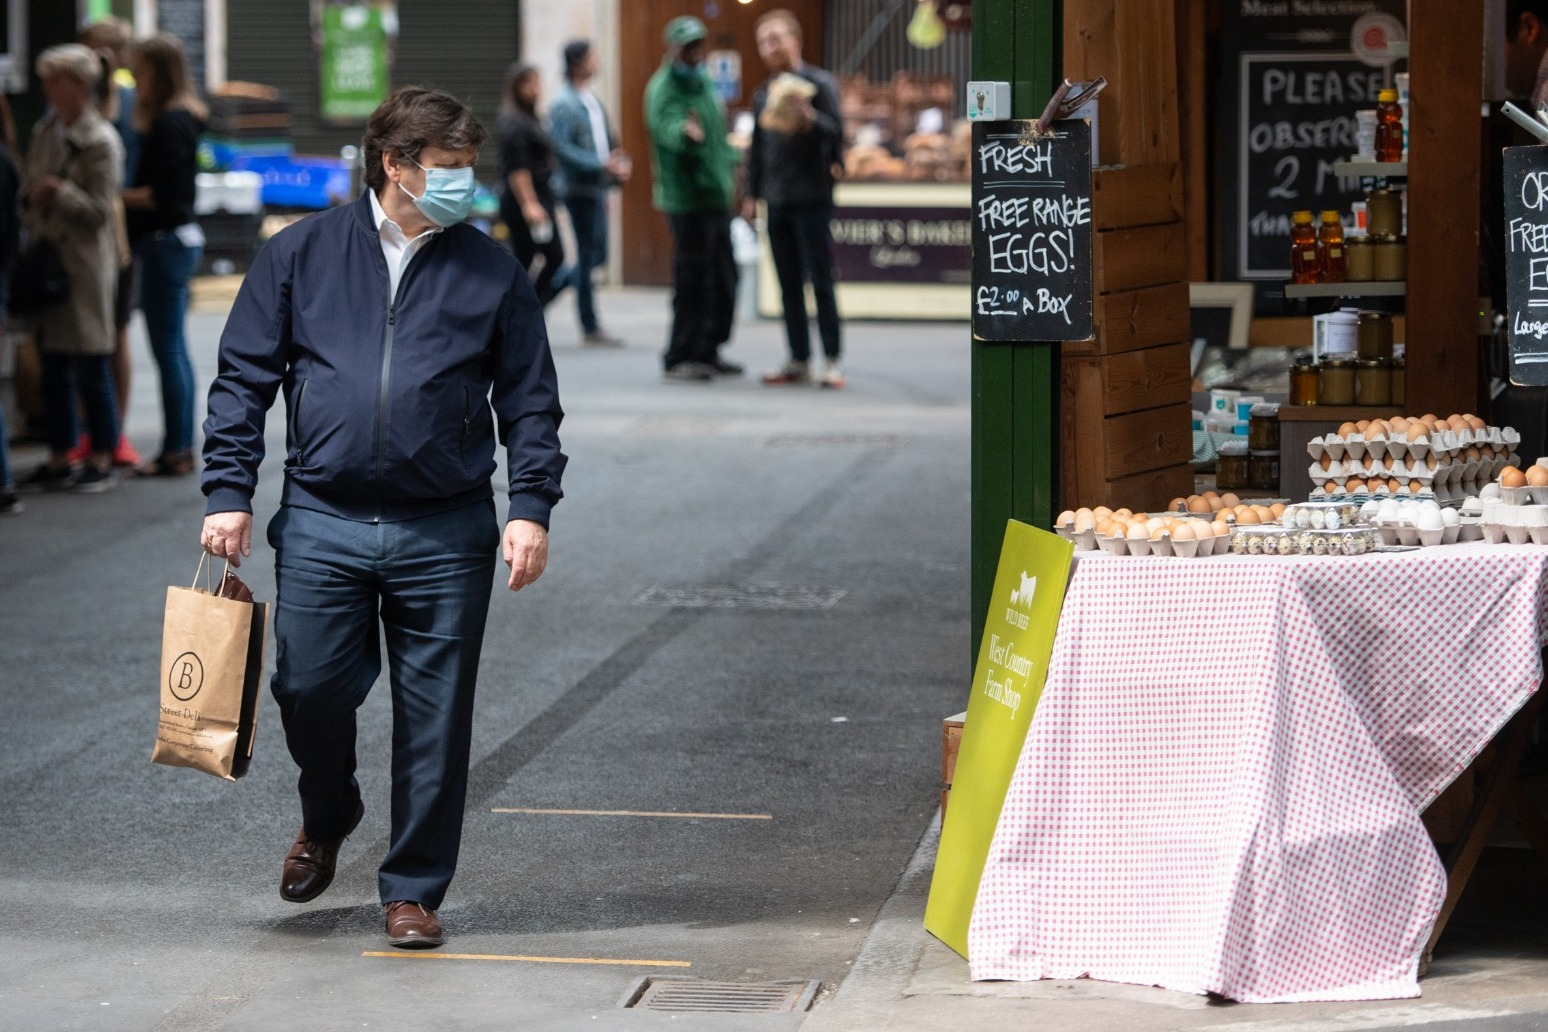 BMA calls for wider wearing of face coverings